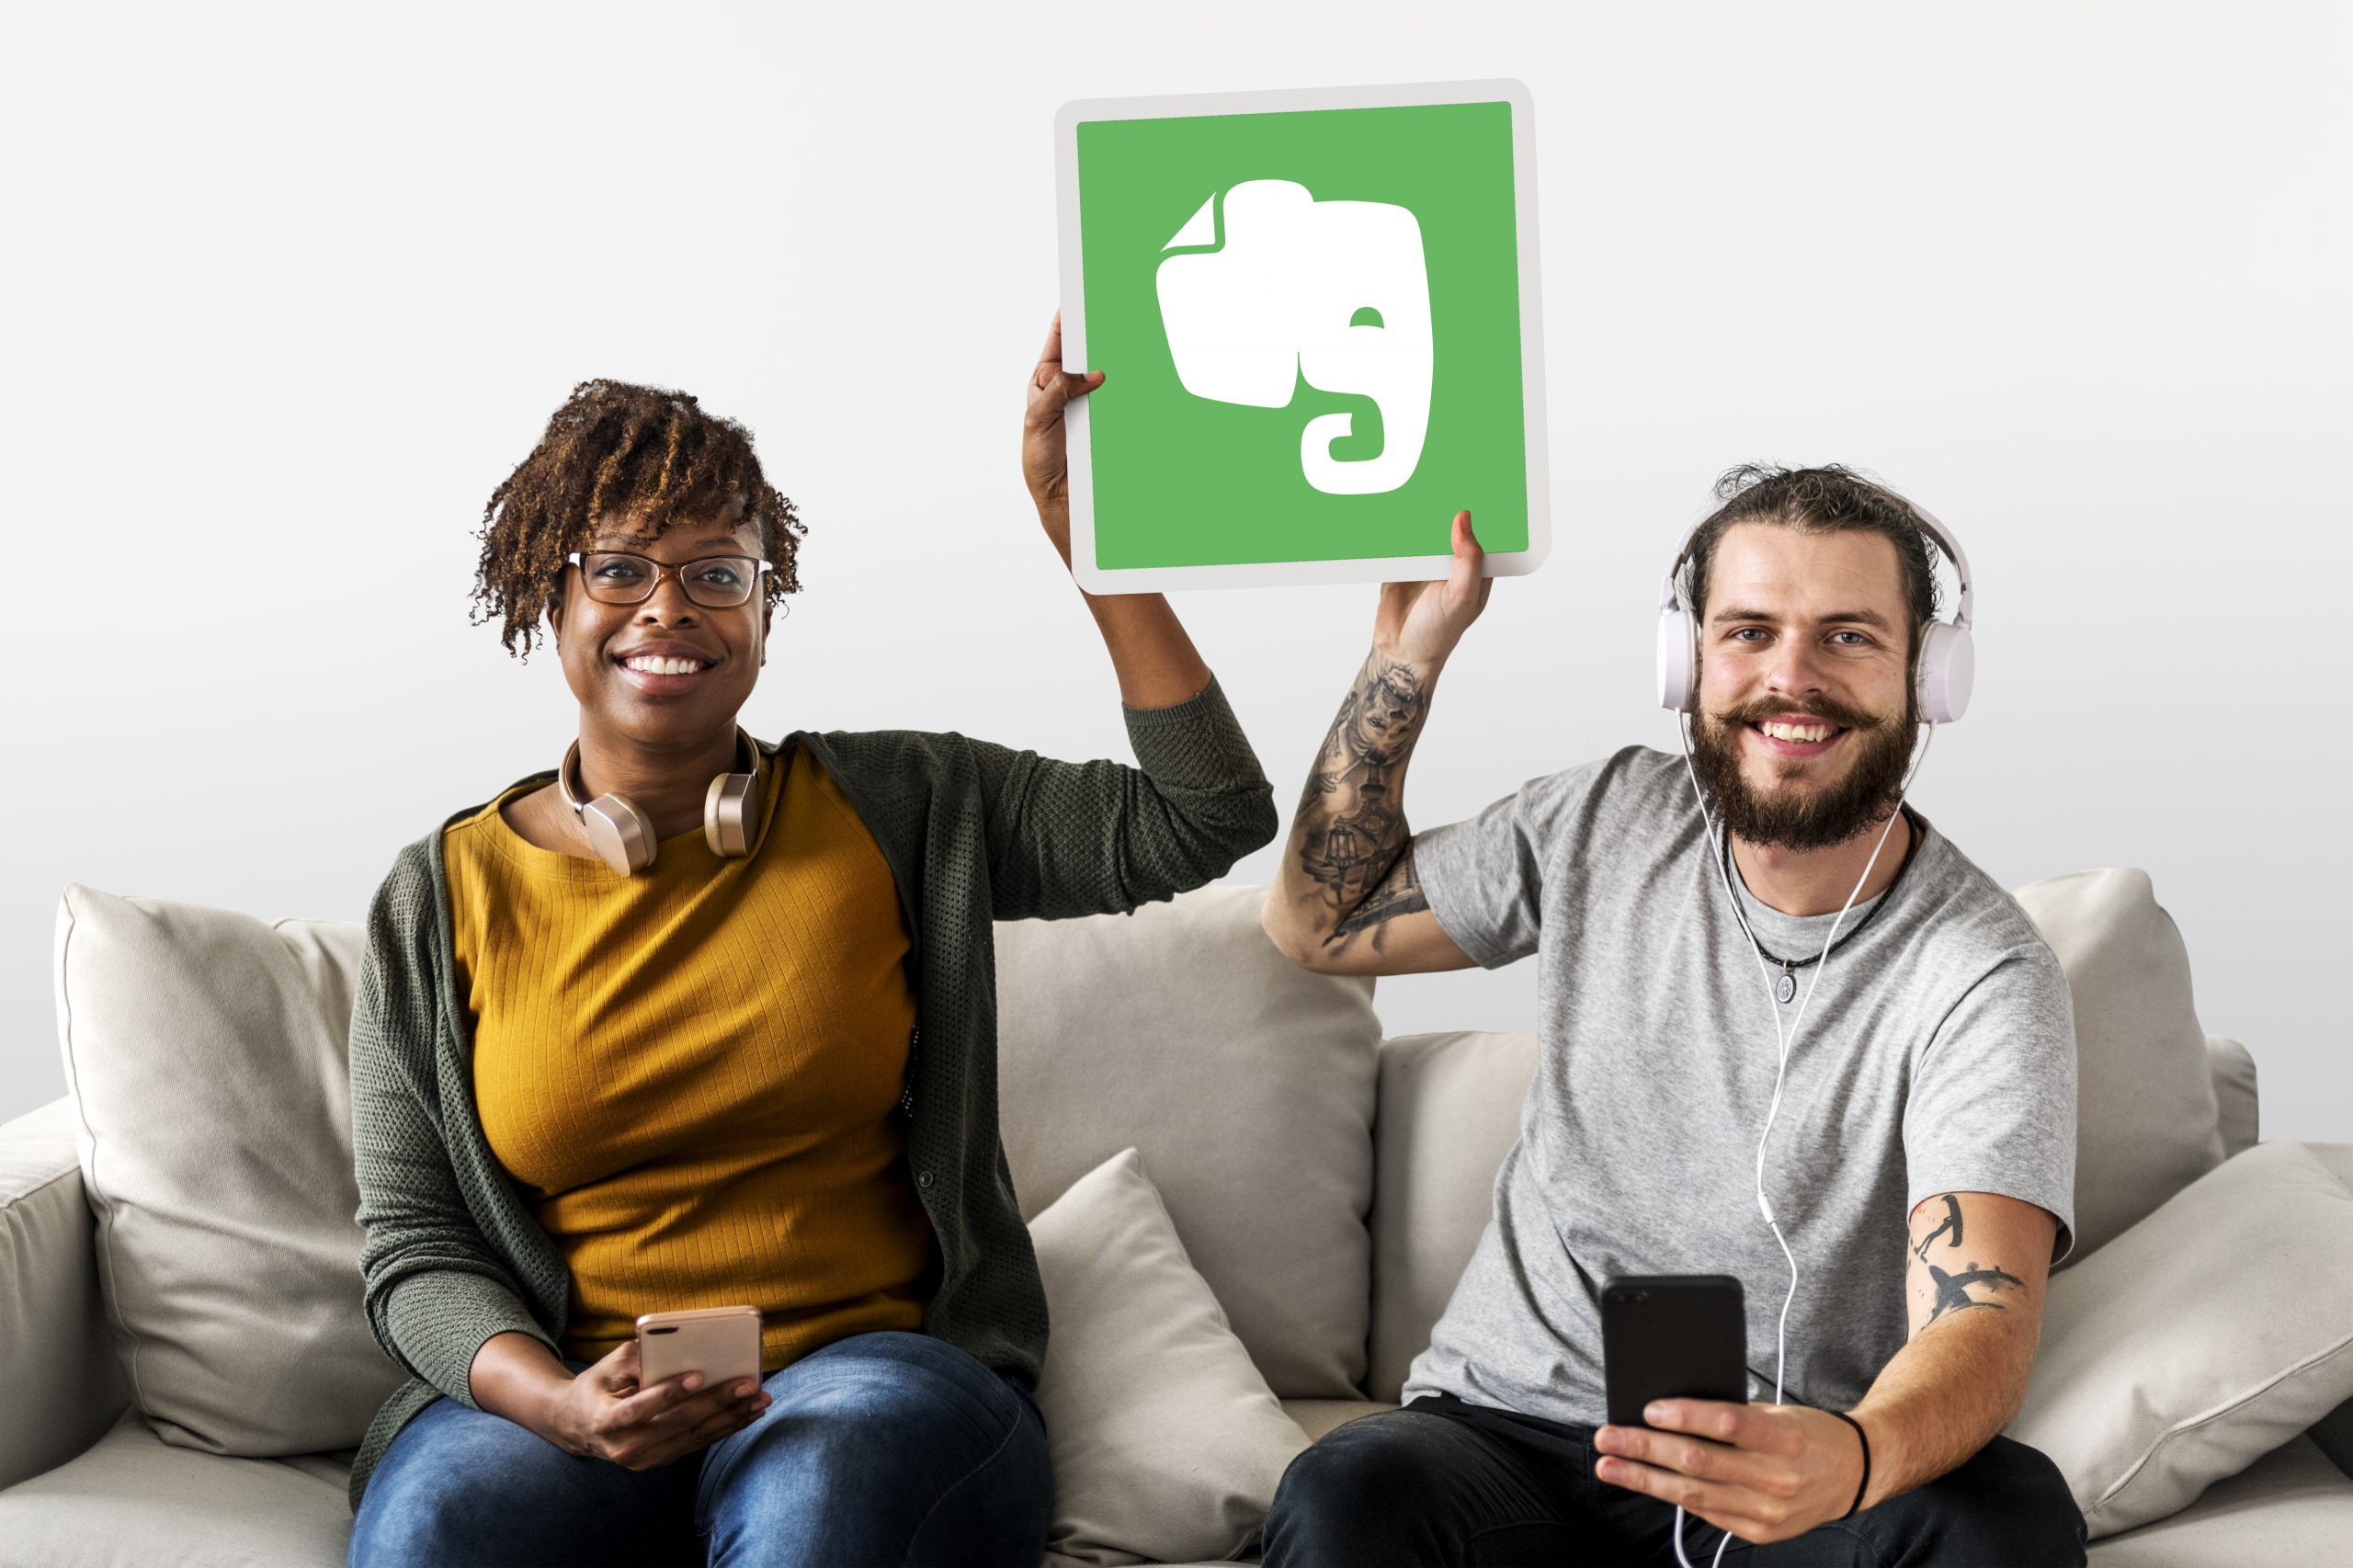 Usando o EVERNOTE para organizar jobs e projetos